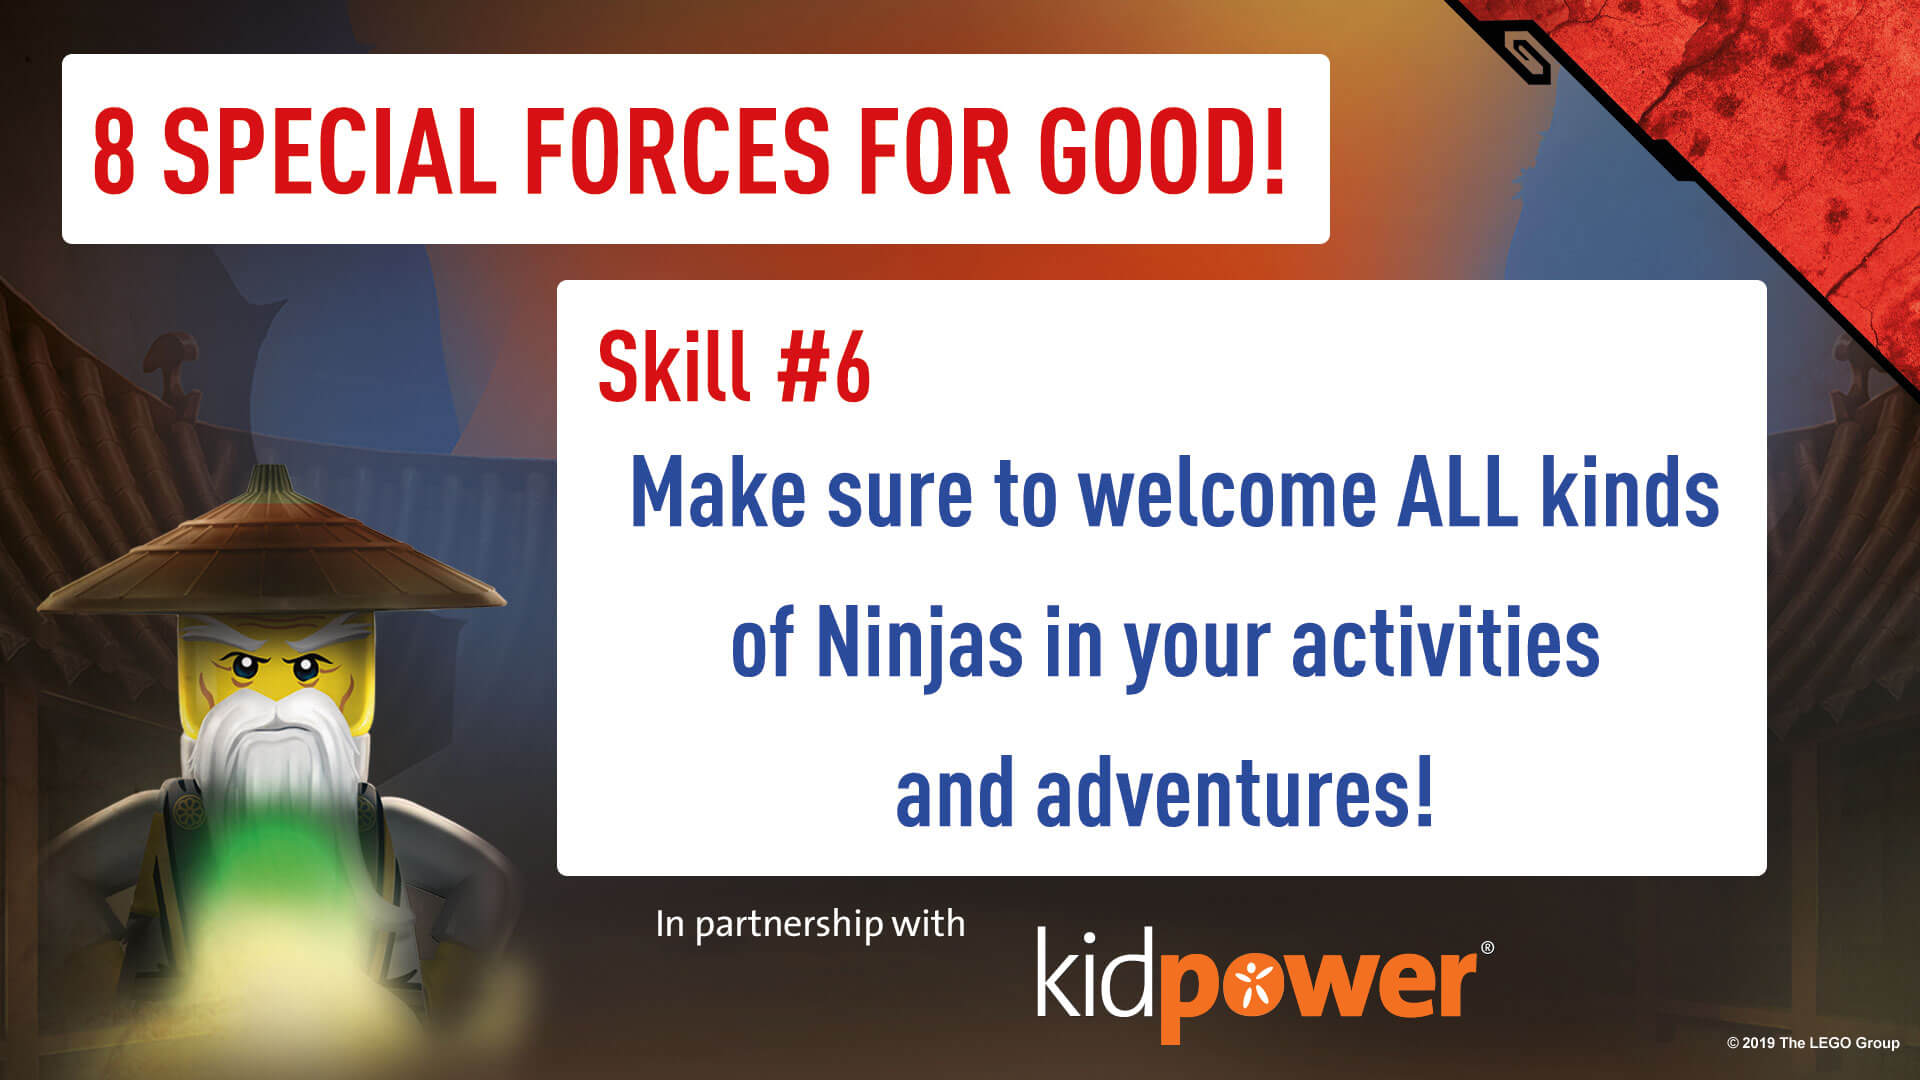 Special Forces For Good - Skill #6 - NINJAGO & KIDPOWER